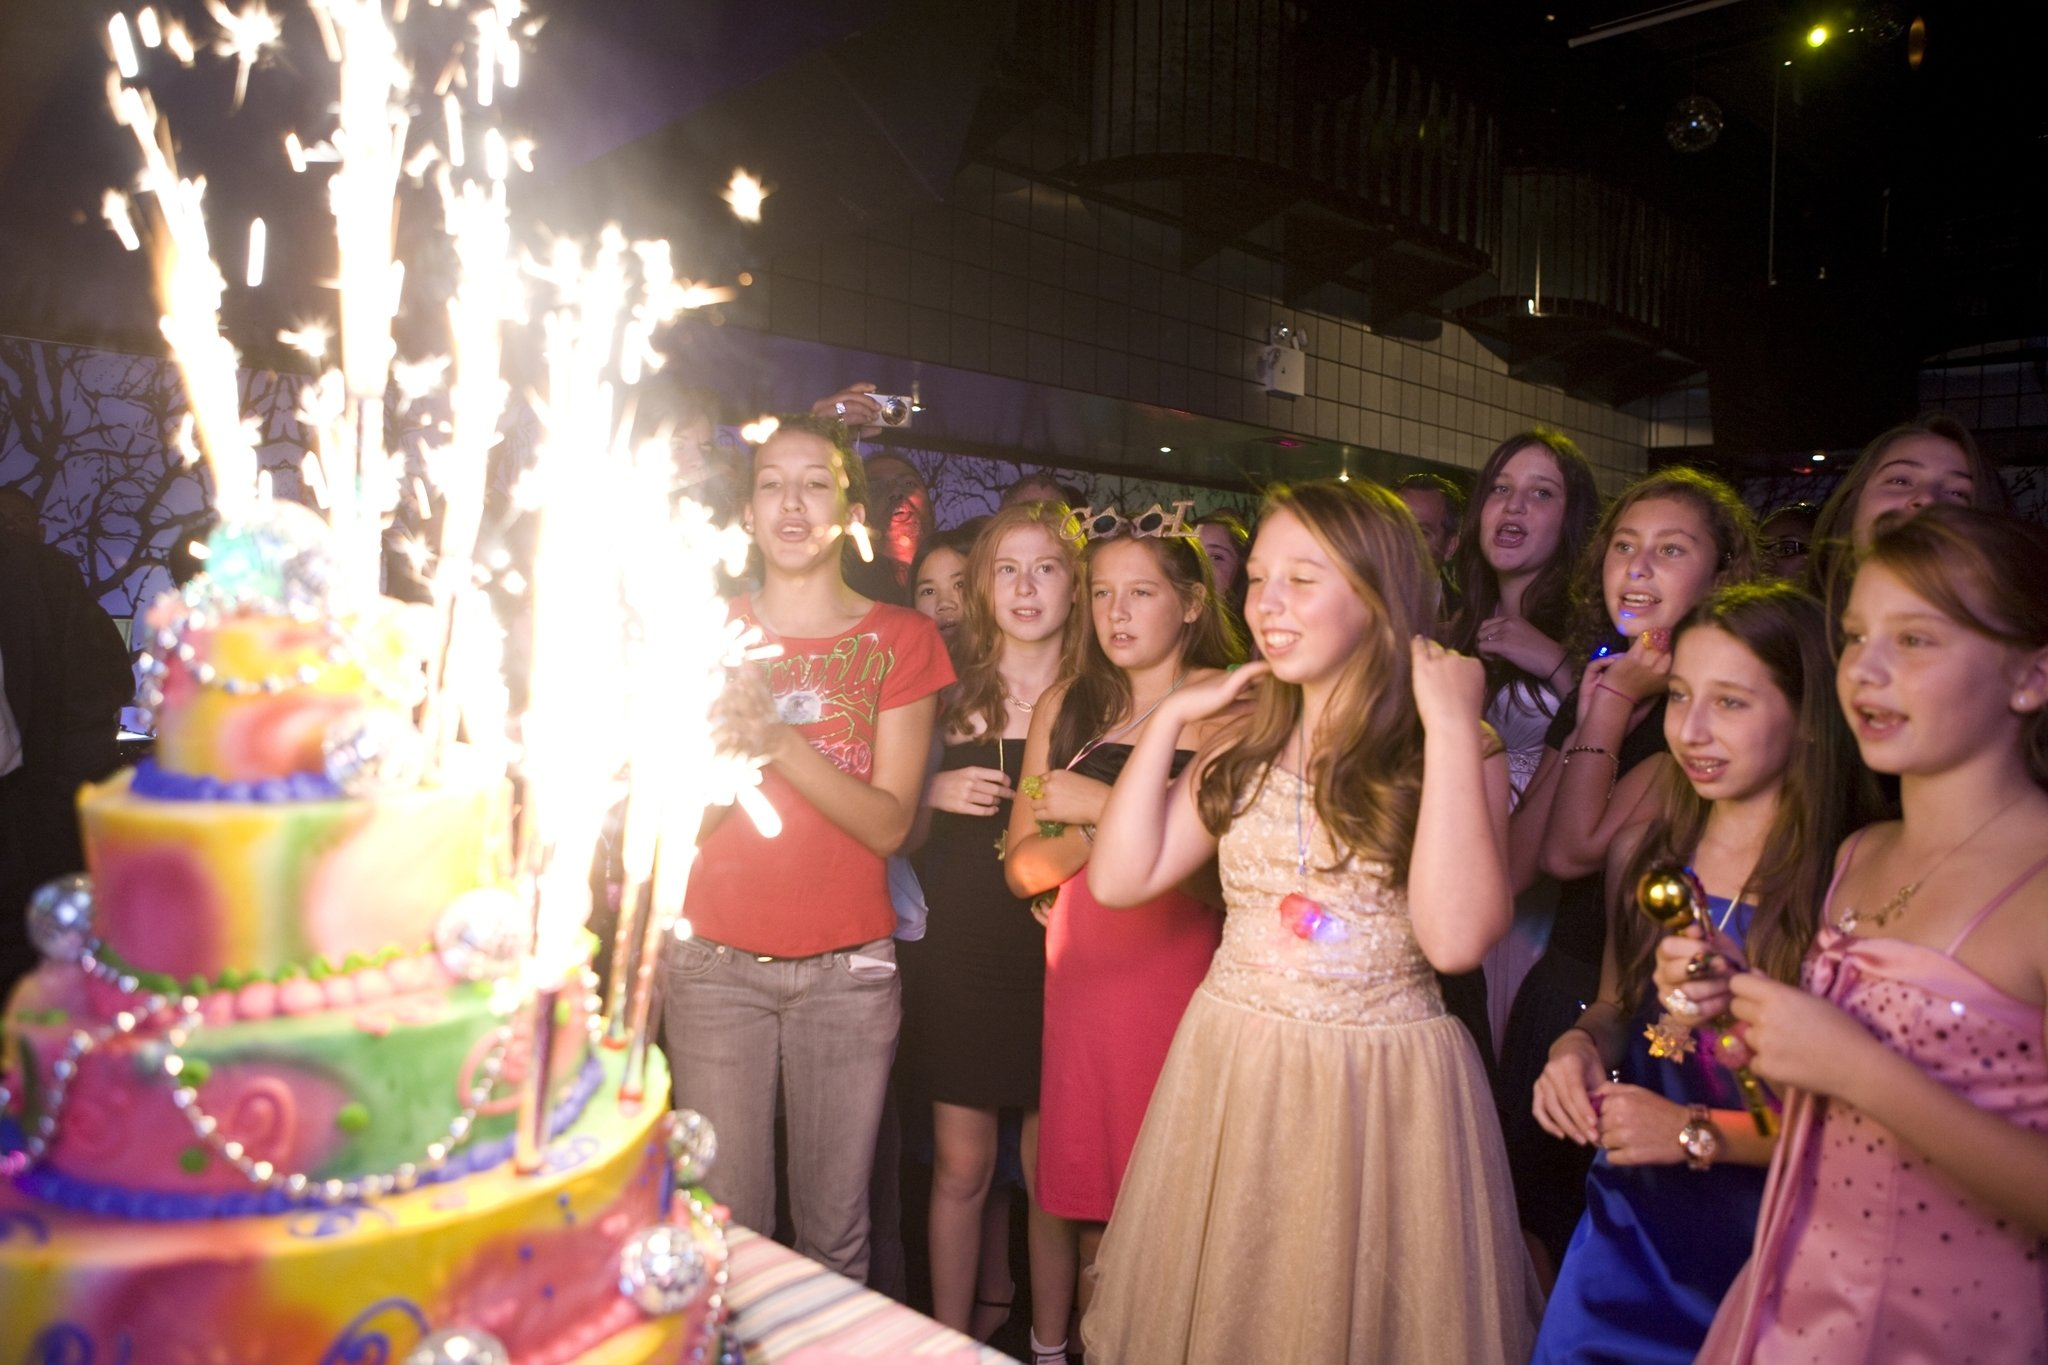 10 Famous Fun Birthday Party Ideas For 12 Year Olds 21st birthday decorations adelaide tags 21 birthday decorations 12 2020